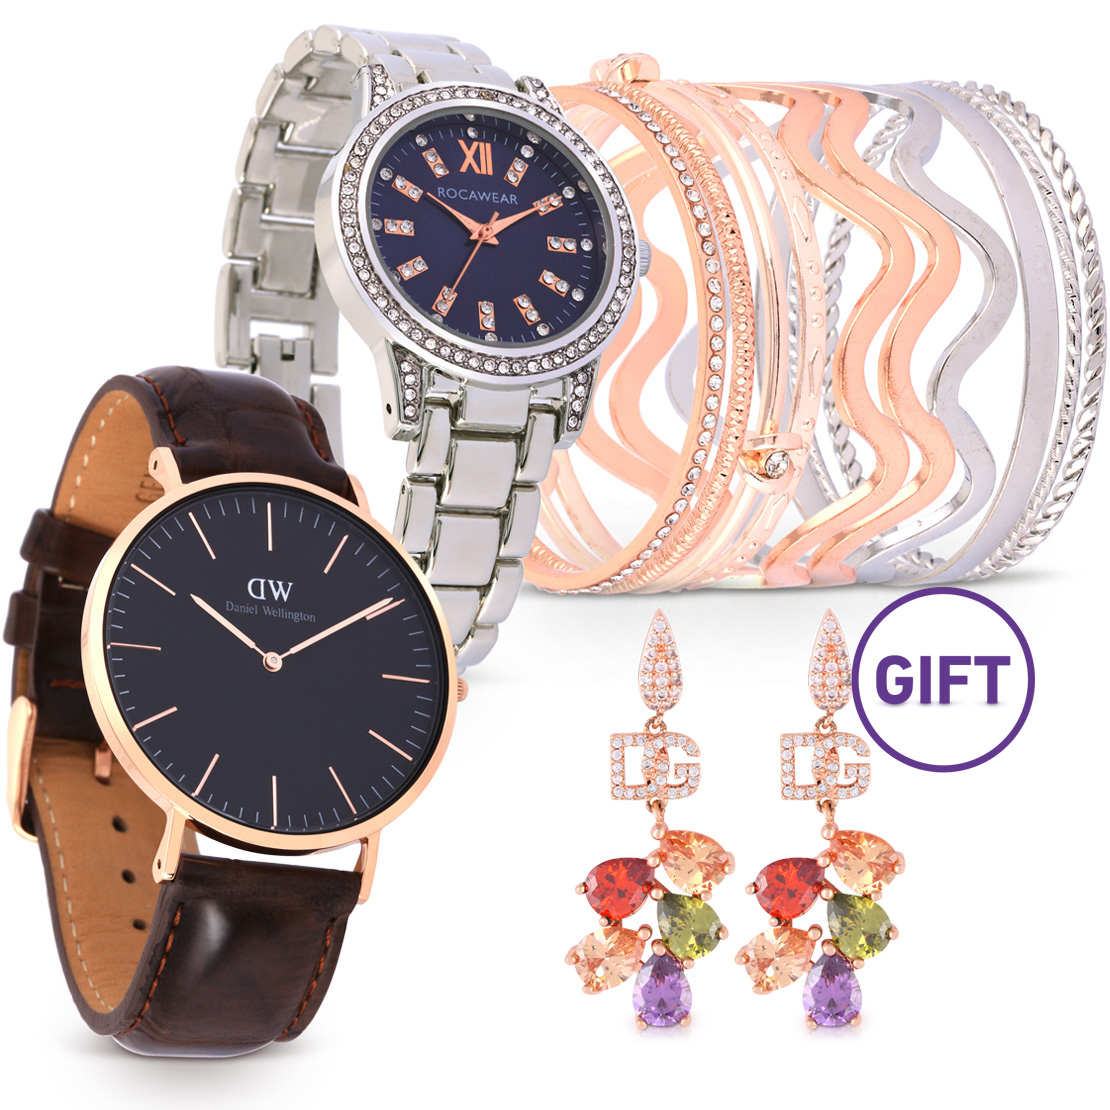 Classic Black York Watch with Gifts